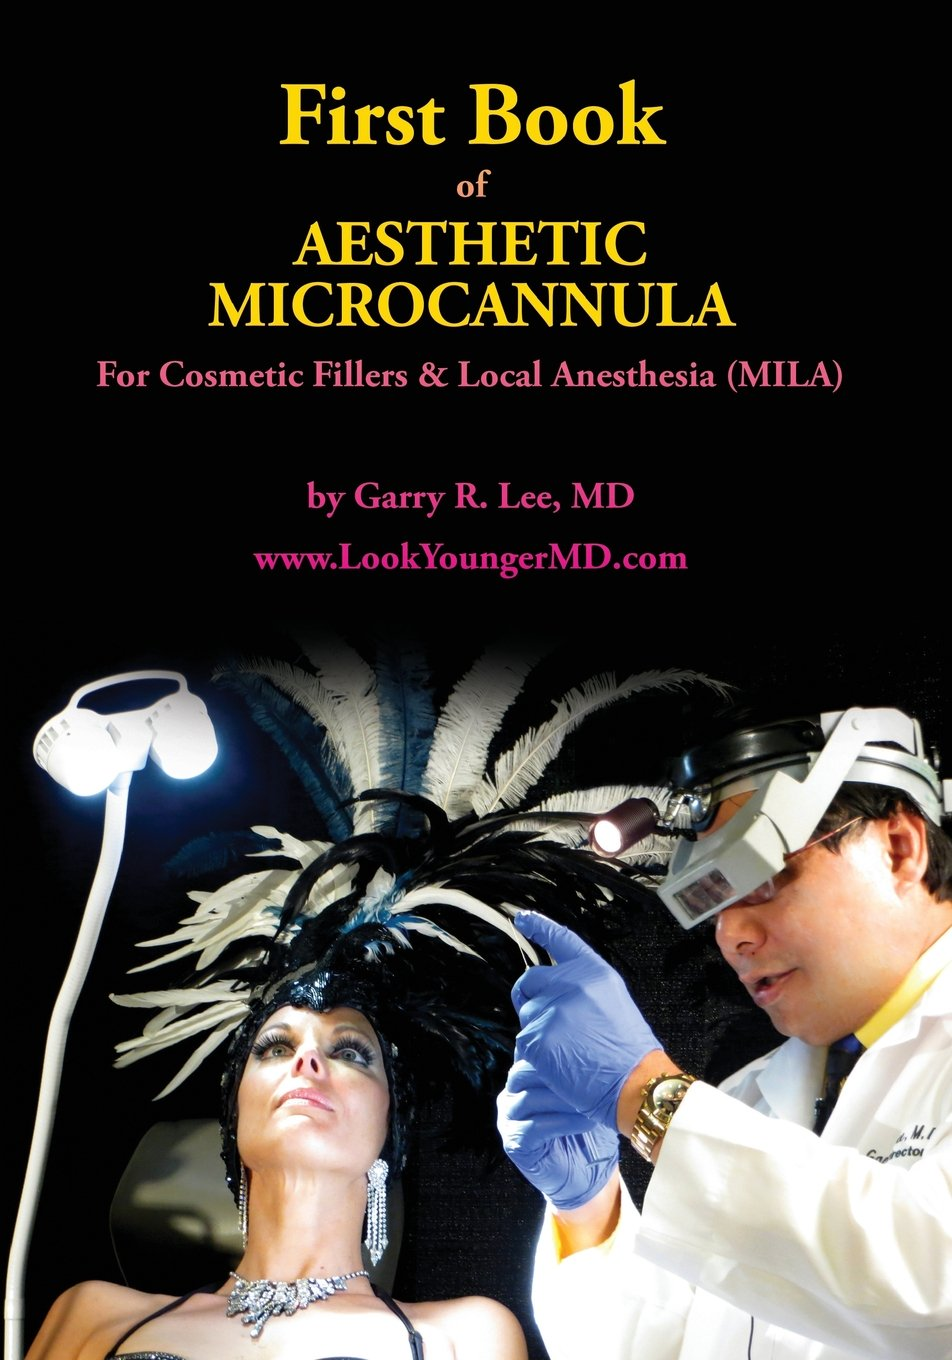 First Book of Aesthetic Microcannula: For Cosmetic Fillers & Local